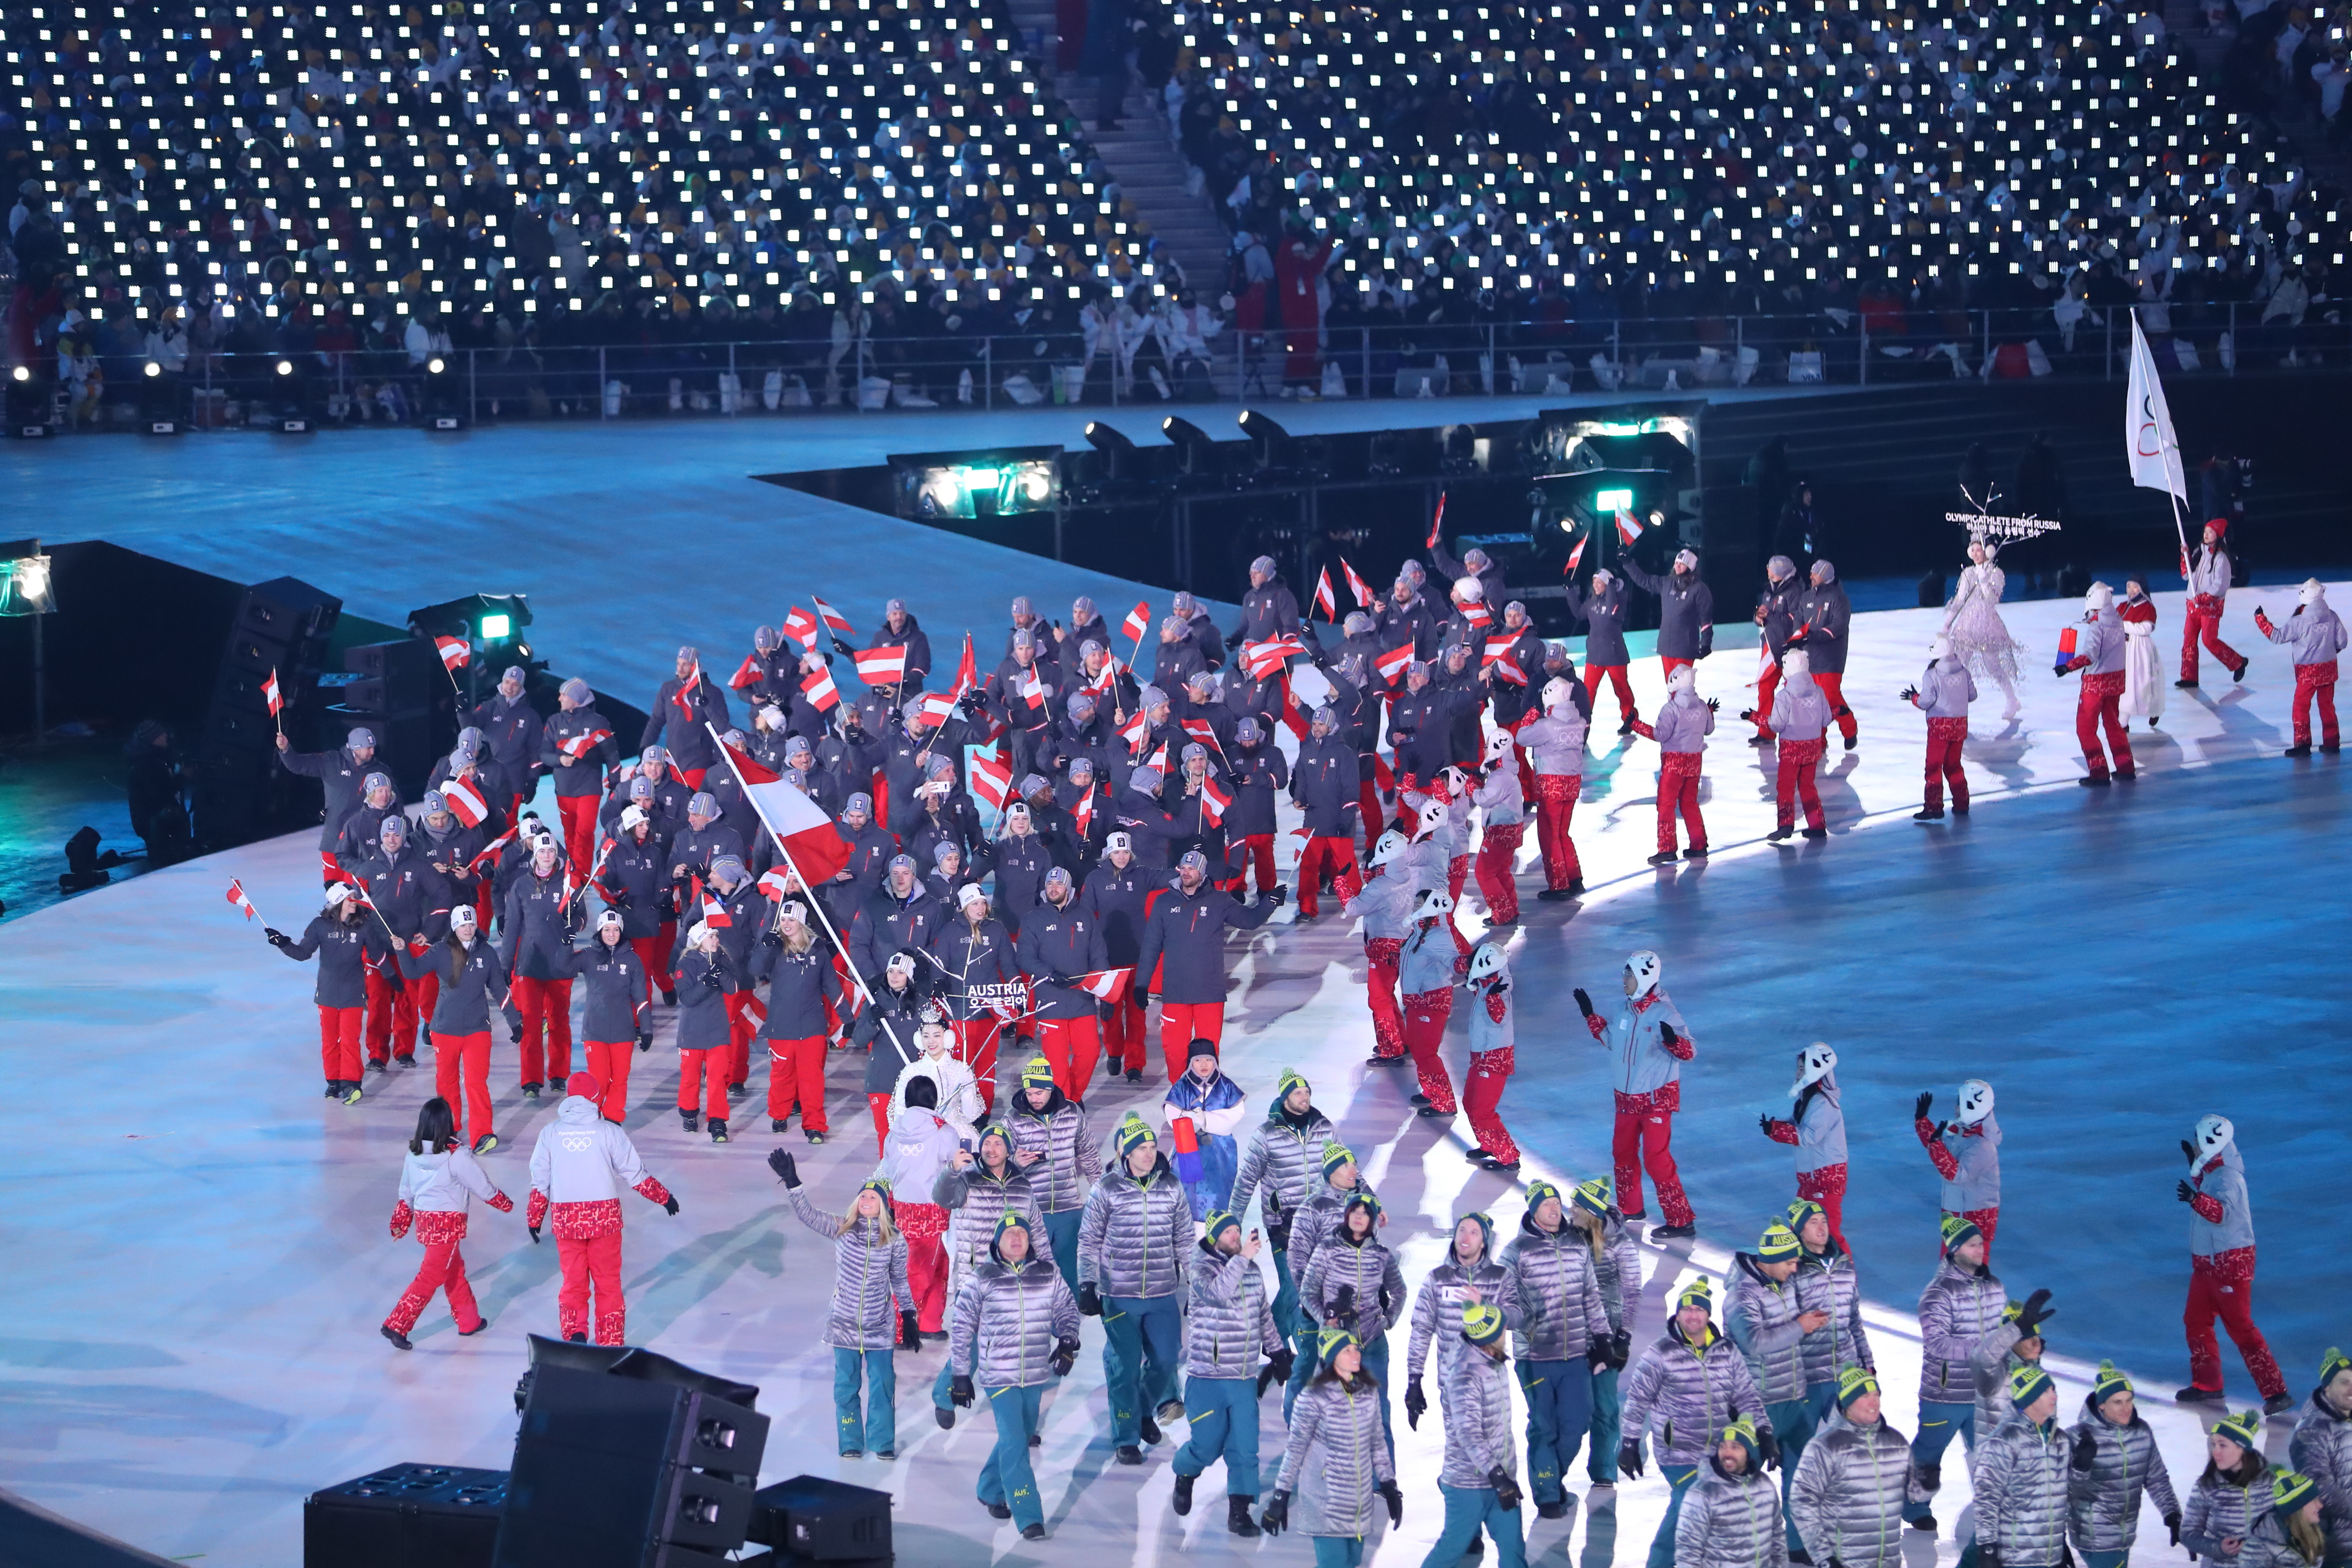 2018 Winter Olympic Games - Opening Ceremony - AUSTRIA  /  OESTERREICH - Opening Ceremony  PYEONGCHANG-GUN, SOUTH KOREA - FEBRUARY 09: Flag bearer Anna Veith of Austria and teammates enter the stadium during the Opening Ceremony of the PyeongChang 2018 Winter Olympic Games at PyeongChang Olympic Stadium on February 9, 2018 in Pyeongchang-gun, South Korea. uth Korea. XXIII. OLYMPIC WINTER GAMES PYEONGCHANG 2018: OPENING CEREMONY, PyeongChang, Korea, Winter Olympics; PyeongChang Olympic Stadium, on 9. February 2018, fee liable image, copyright © ATP / OSADA Yohei  Featuring: Anna Veith of Austria and teammates Where: Pyeongchang, Gangwon Province, South Korea When: 09 Feb 2018 Credit: ATP/WENN.com  **Not available for publication in Germany or France. No Contact Music.**